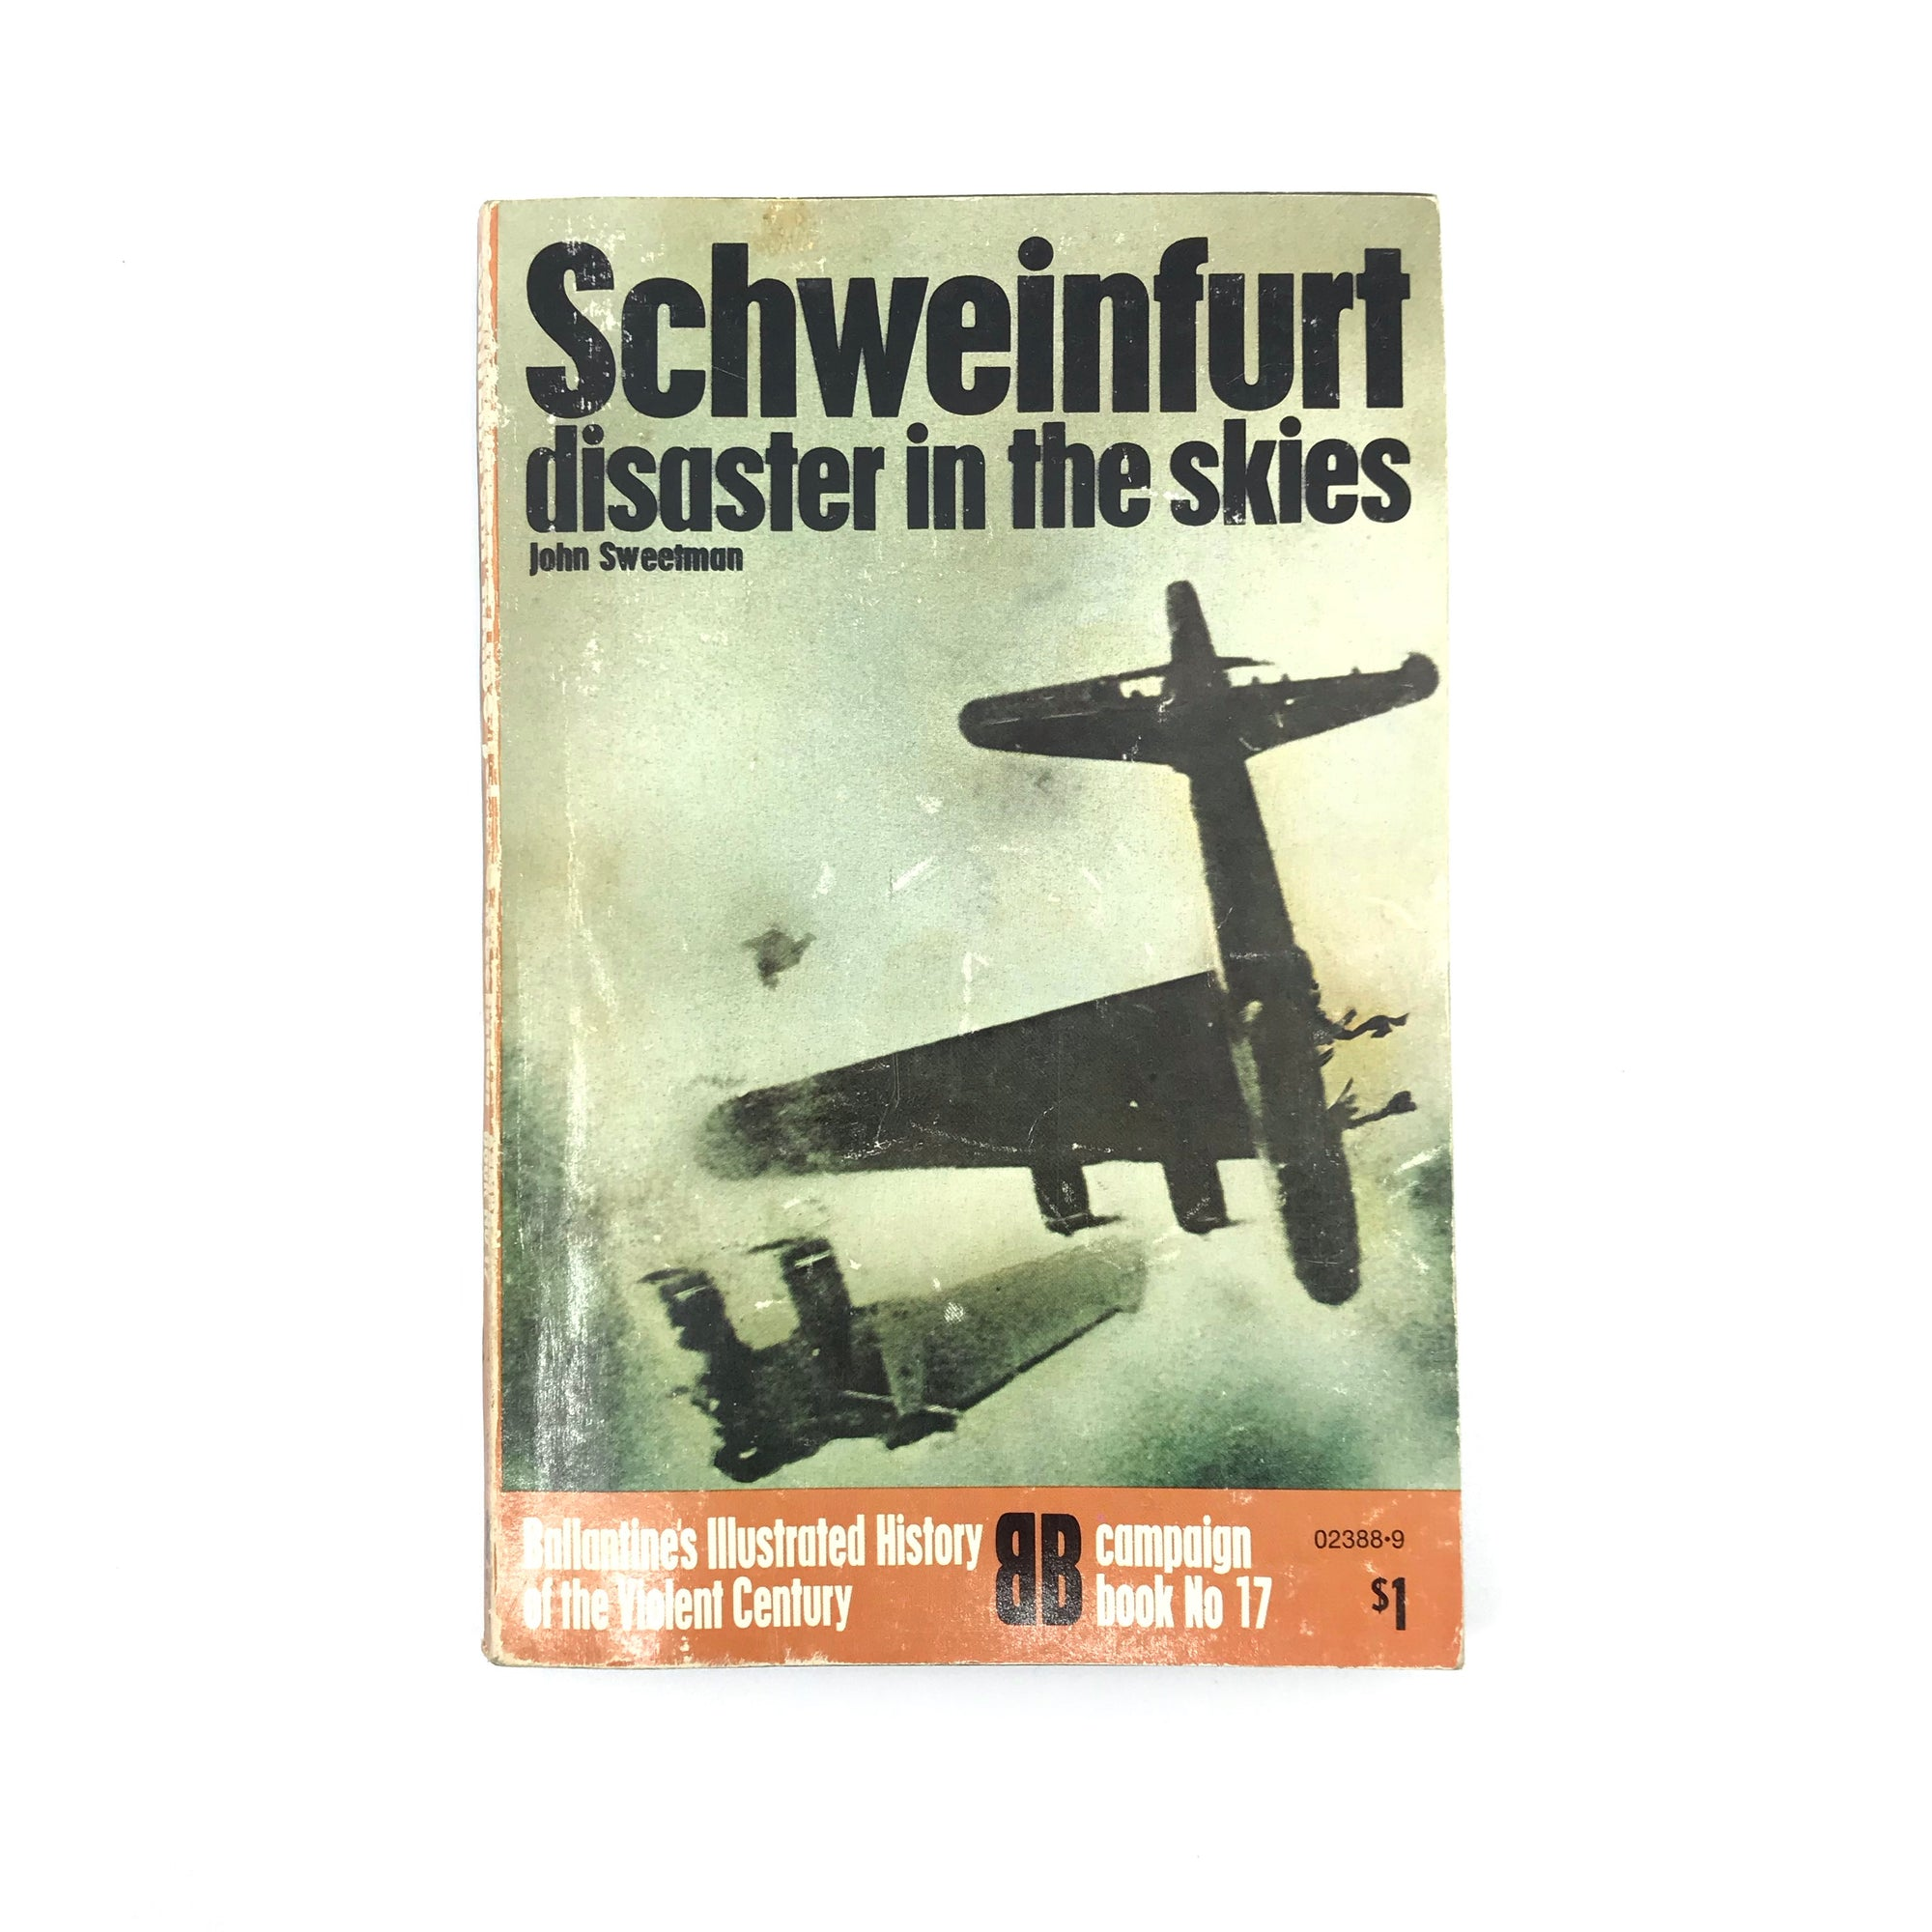 Ballantine's Illustrated History of the Violent Century: Campaign Book No17 Schweinfurt Disaster in the Skies (John Sweetman)